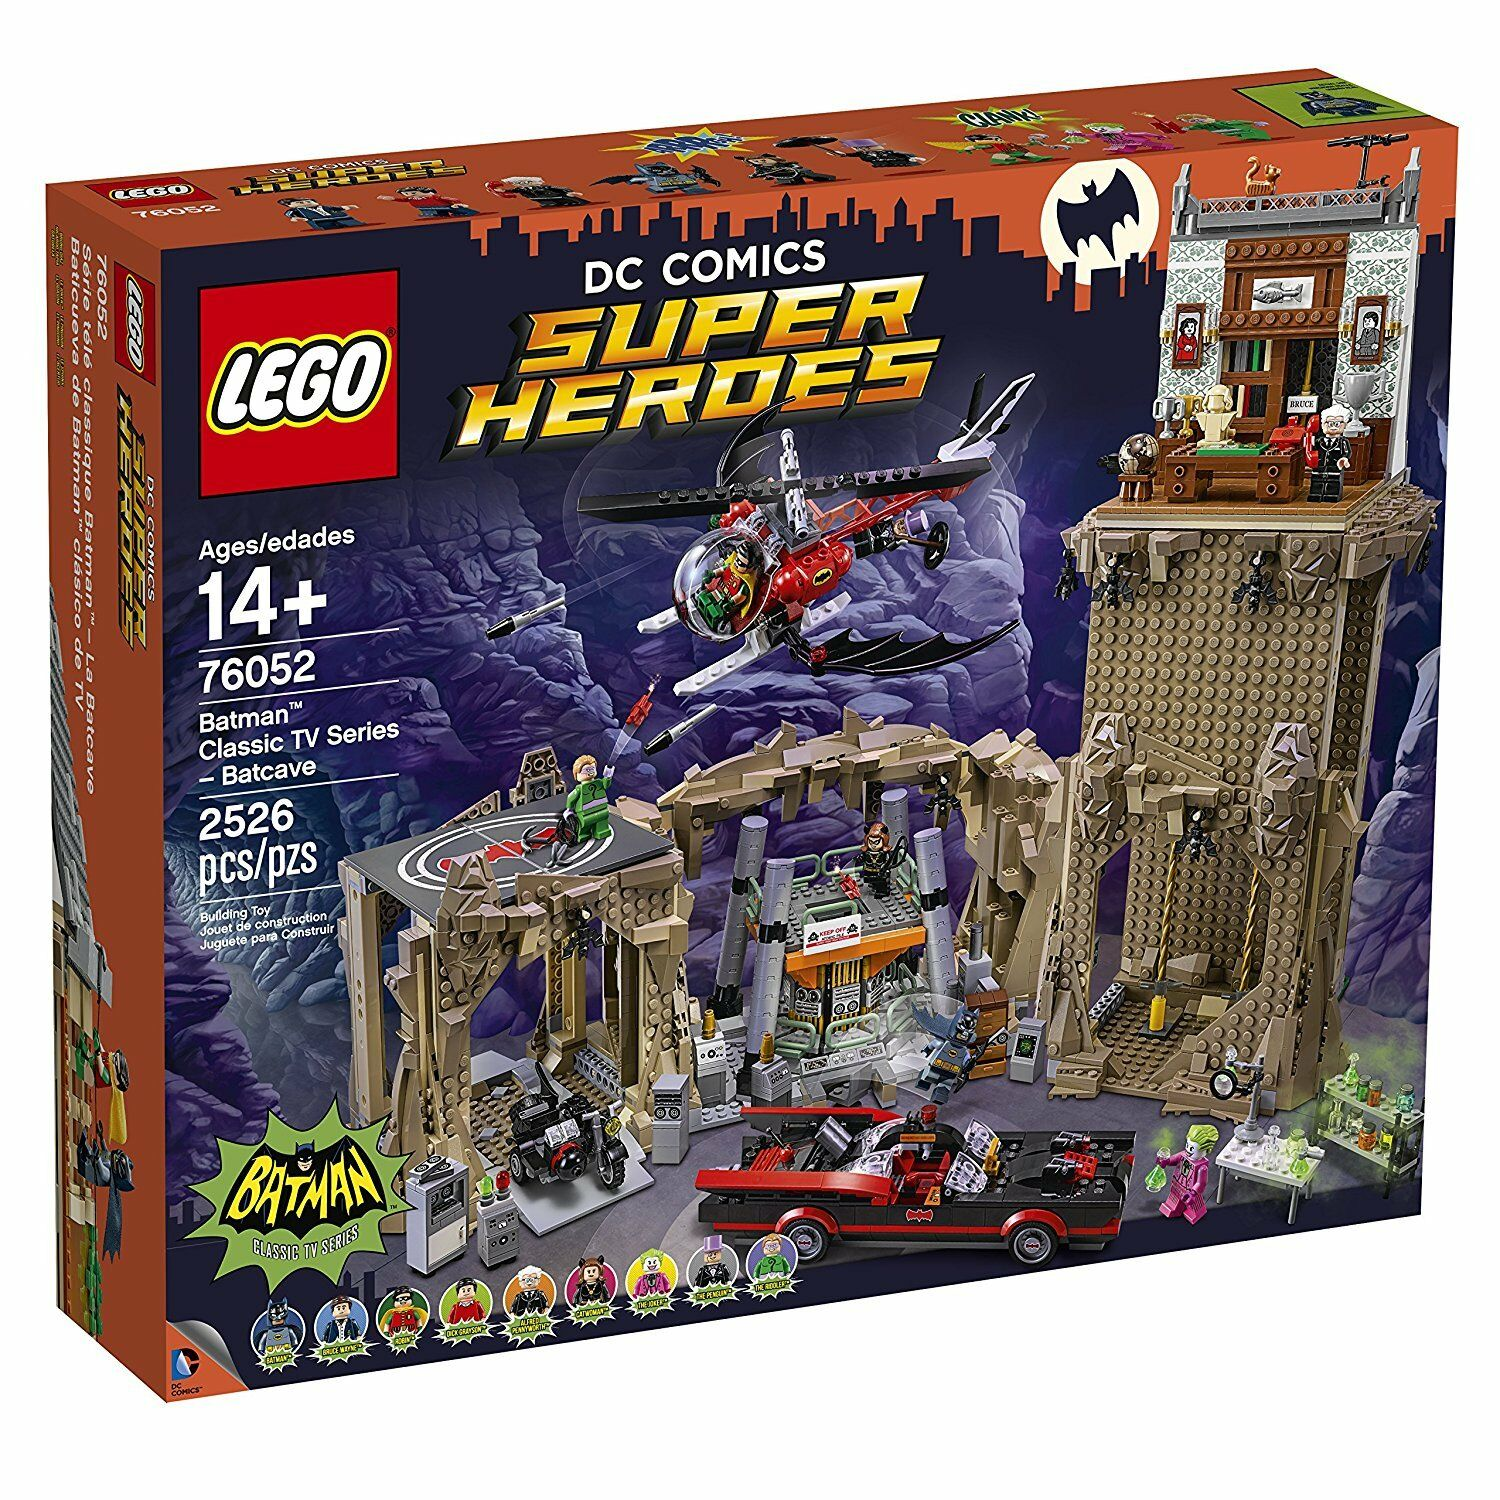 Lego® Super Heroes 76052 Baticueva de Batman clásico de TV  - New - Sealed